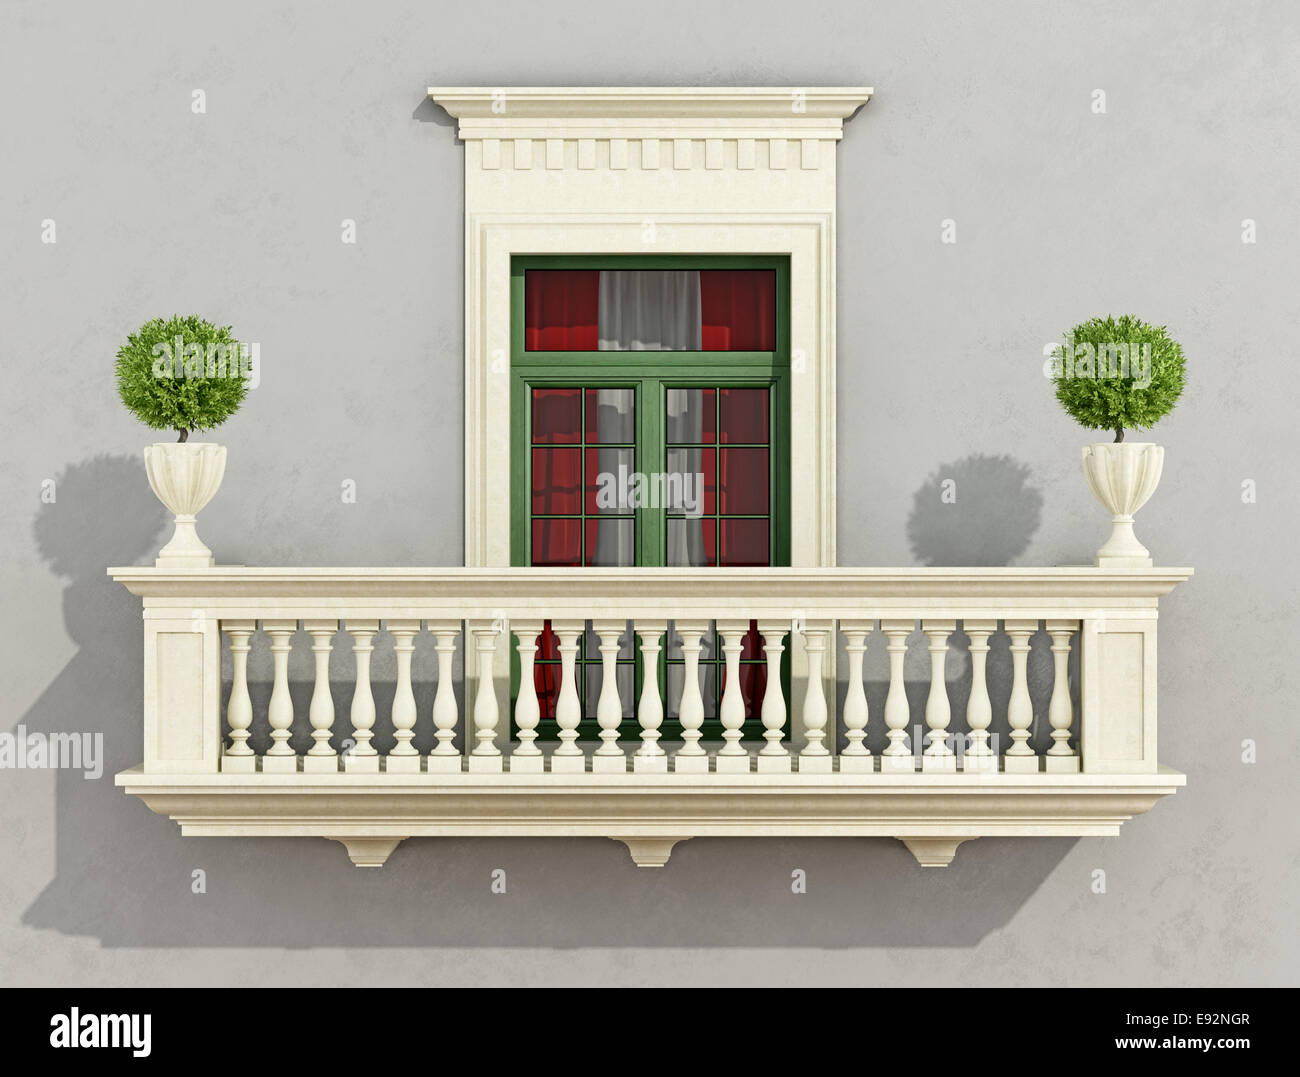 graue klassische fassade mit steinernen balkon und fenster 3d rendering stockfoto bild. Black Bedroom Furniture Sets. Home Design Ideas